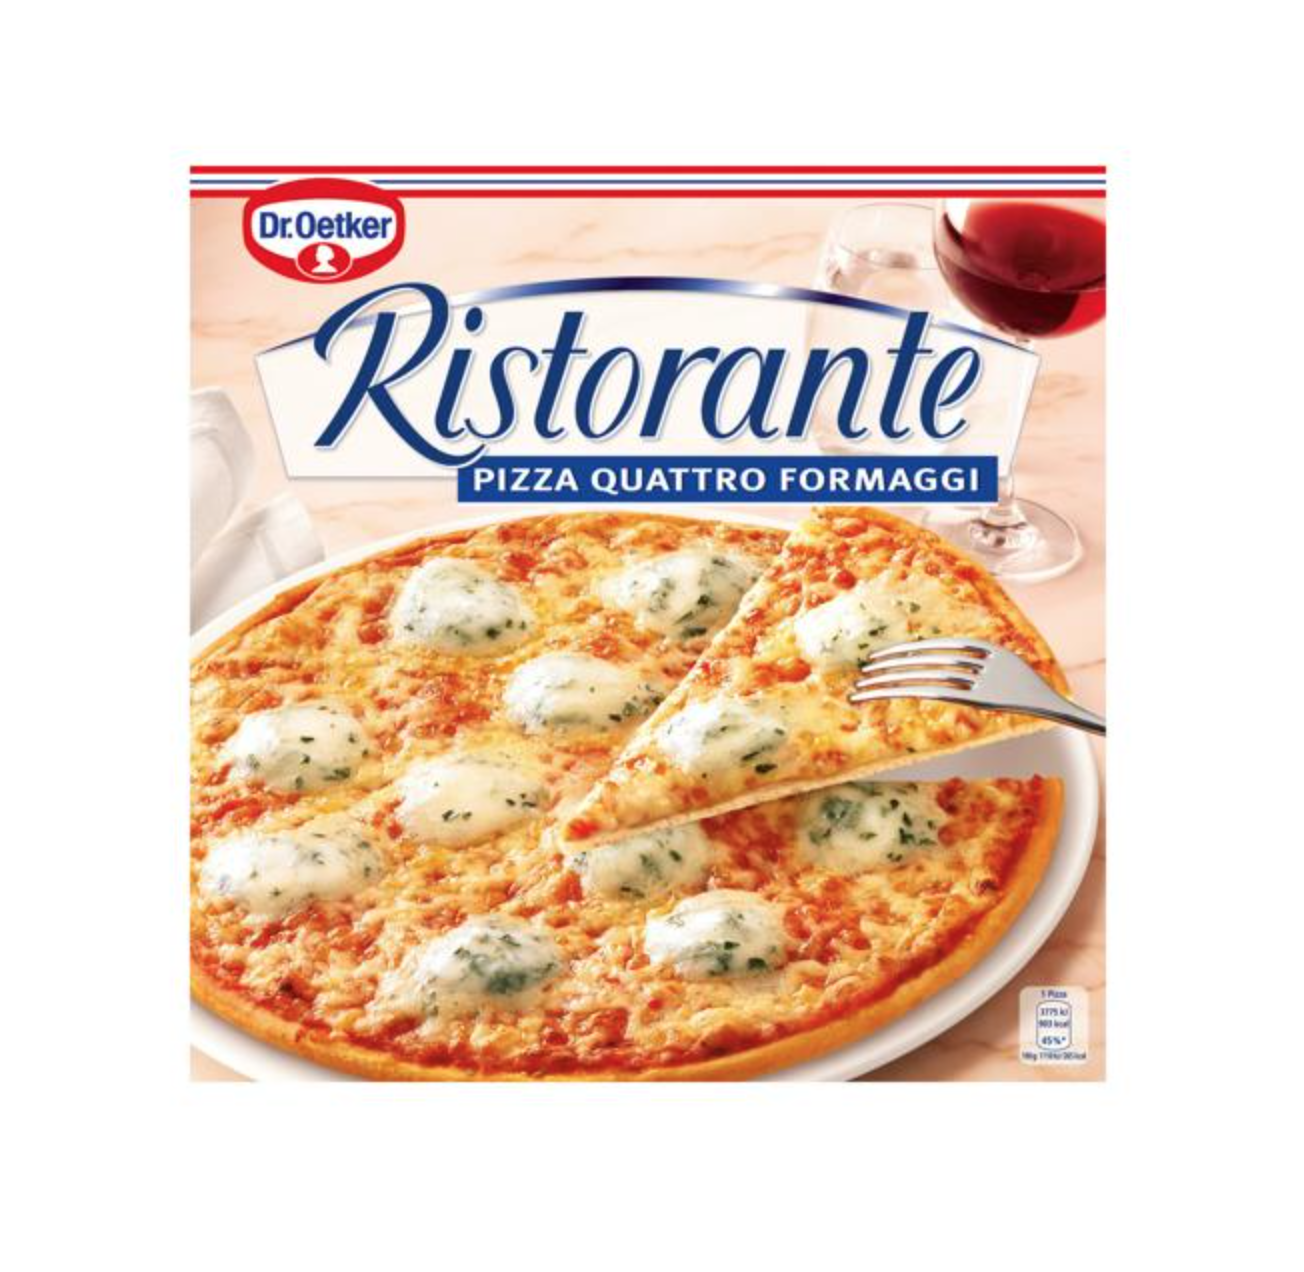 ristorante pizza coupons uk